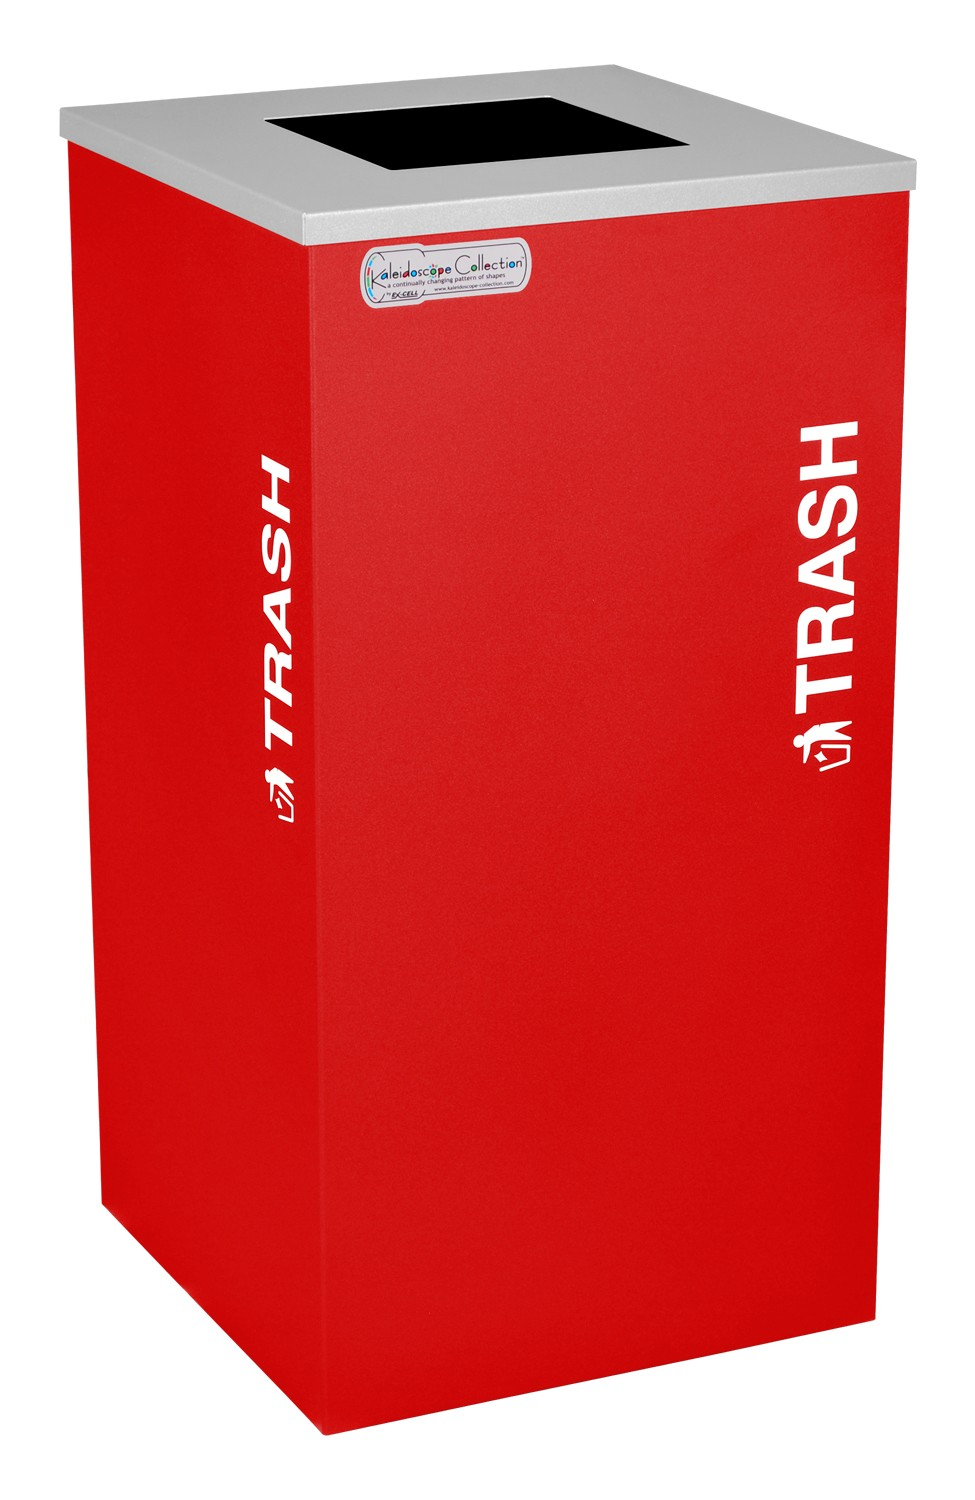 Ex-Cell Kaiser RC-KDSQ-T RBX 18-gal recycling recptacle- square top and Trash decal- Ruby Texture finish